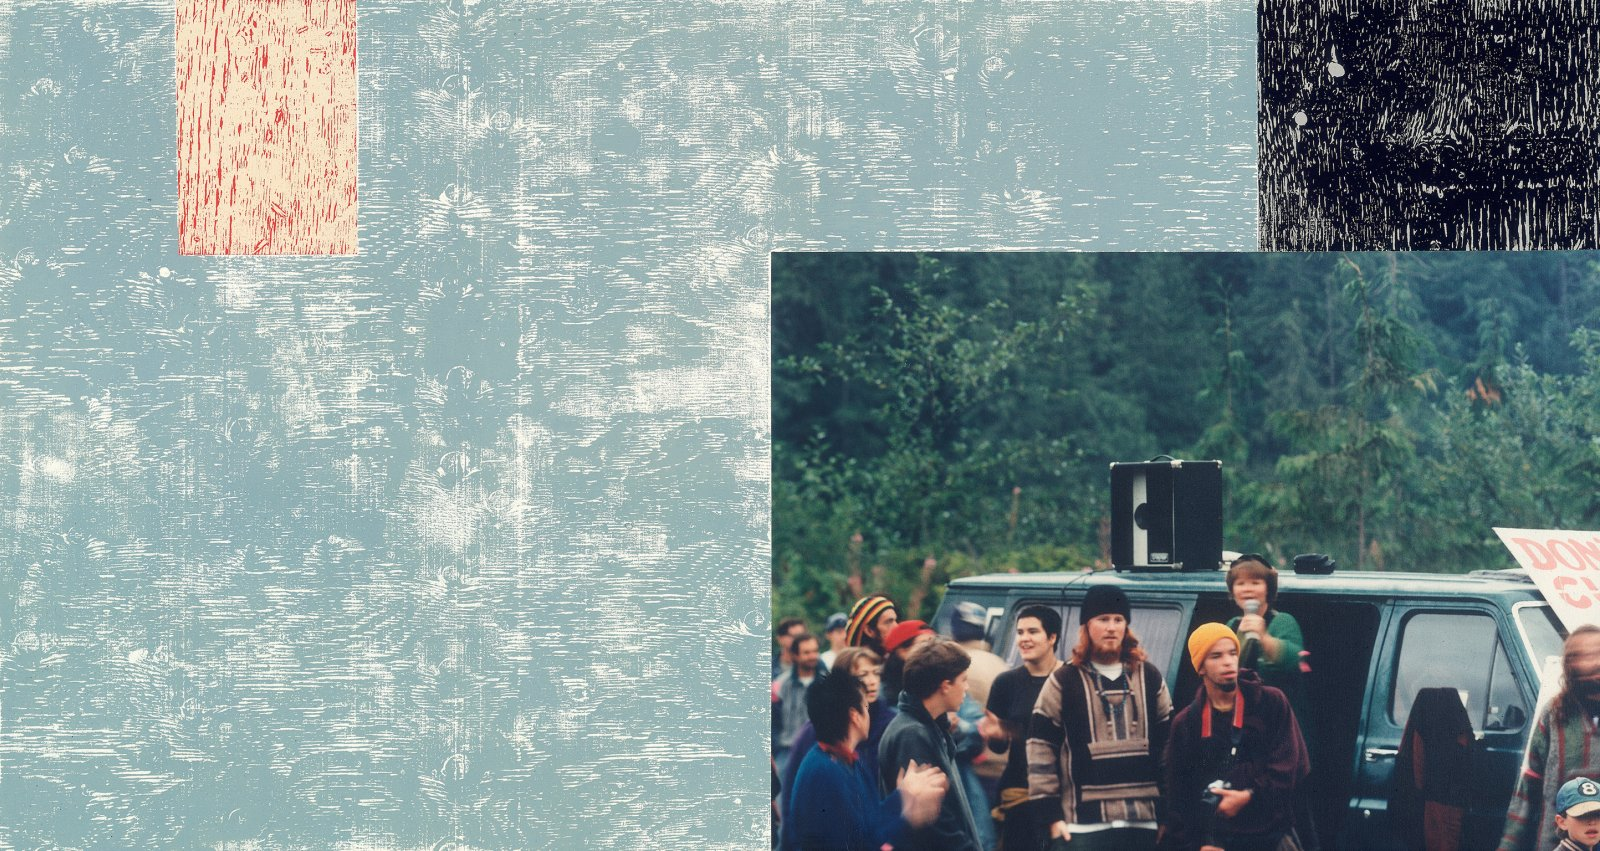 ​Ian Wallace, Clayoquot Protest (August 9, 1993) VI, 1993–1995, photolaminate with acrylic on canvas, 48 x 90 x 1 in. (123 x 229 x 4 cm)​ by Ian Wallace